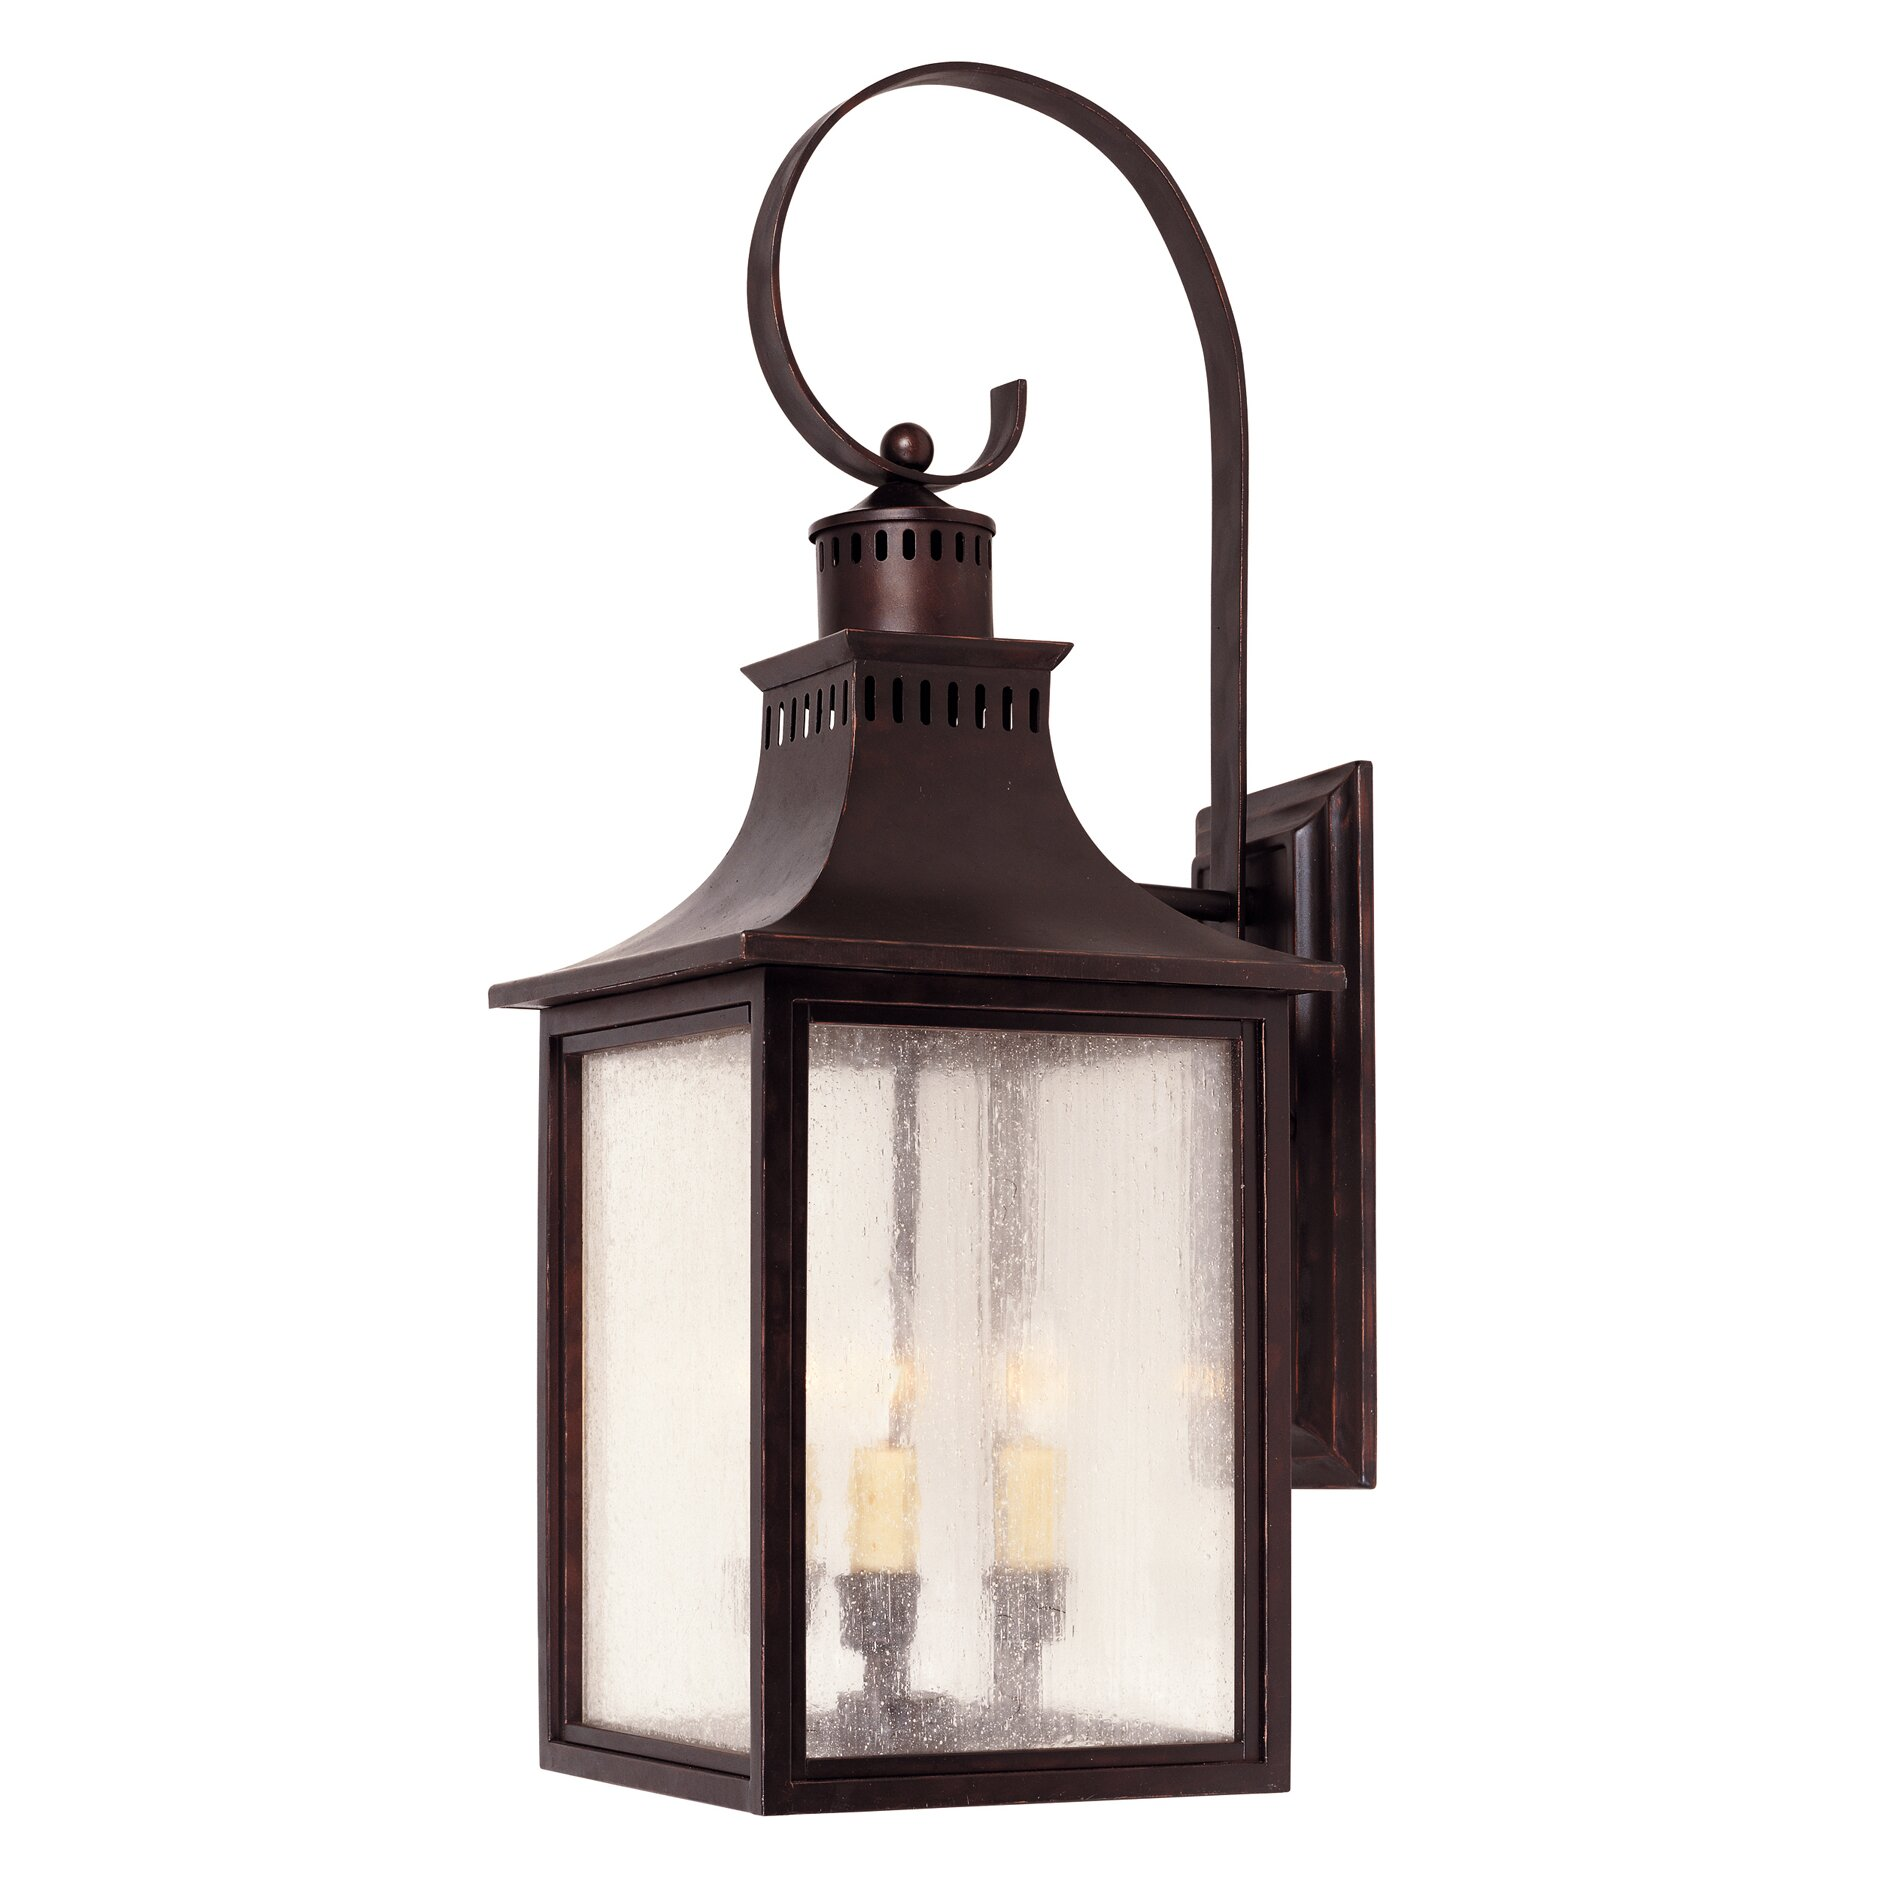 Wayfair Outdoor Wall Lights : Savoy House Monte Grande 3 Light Outdoor Wall Lantern & Reviews Wayfair